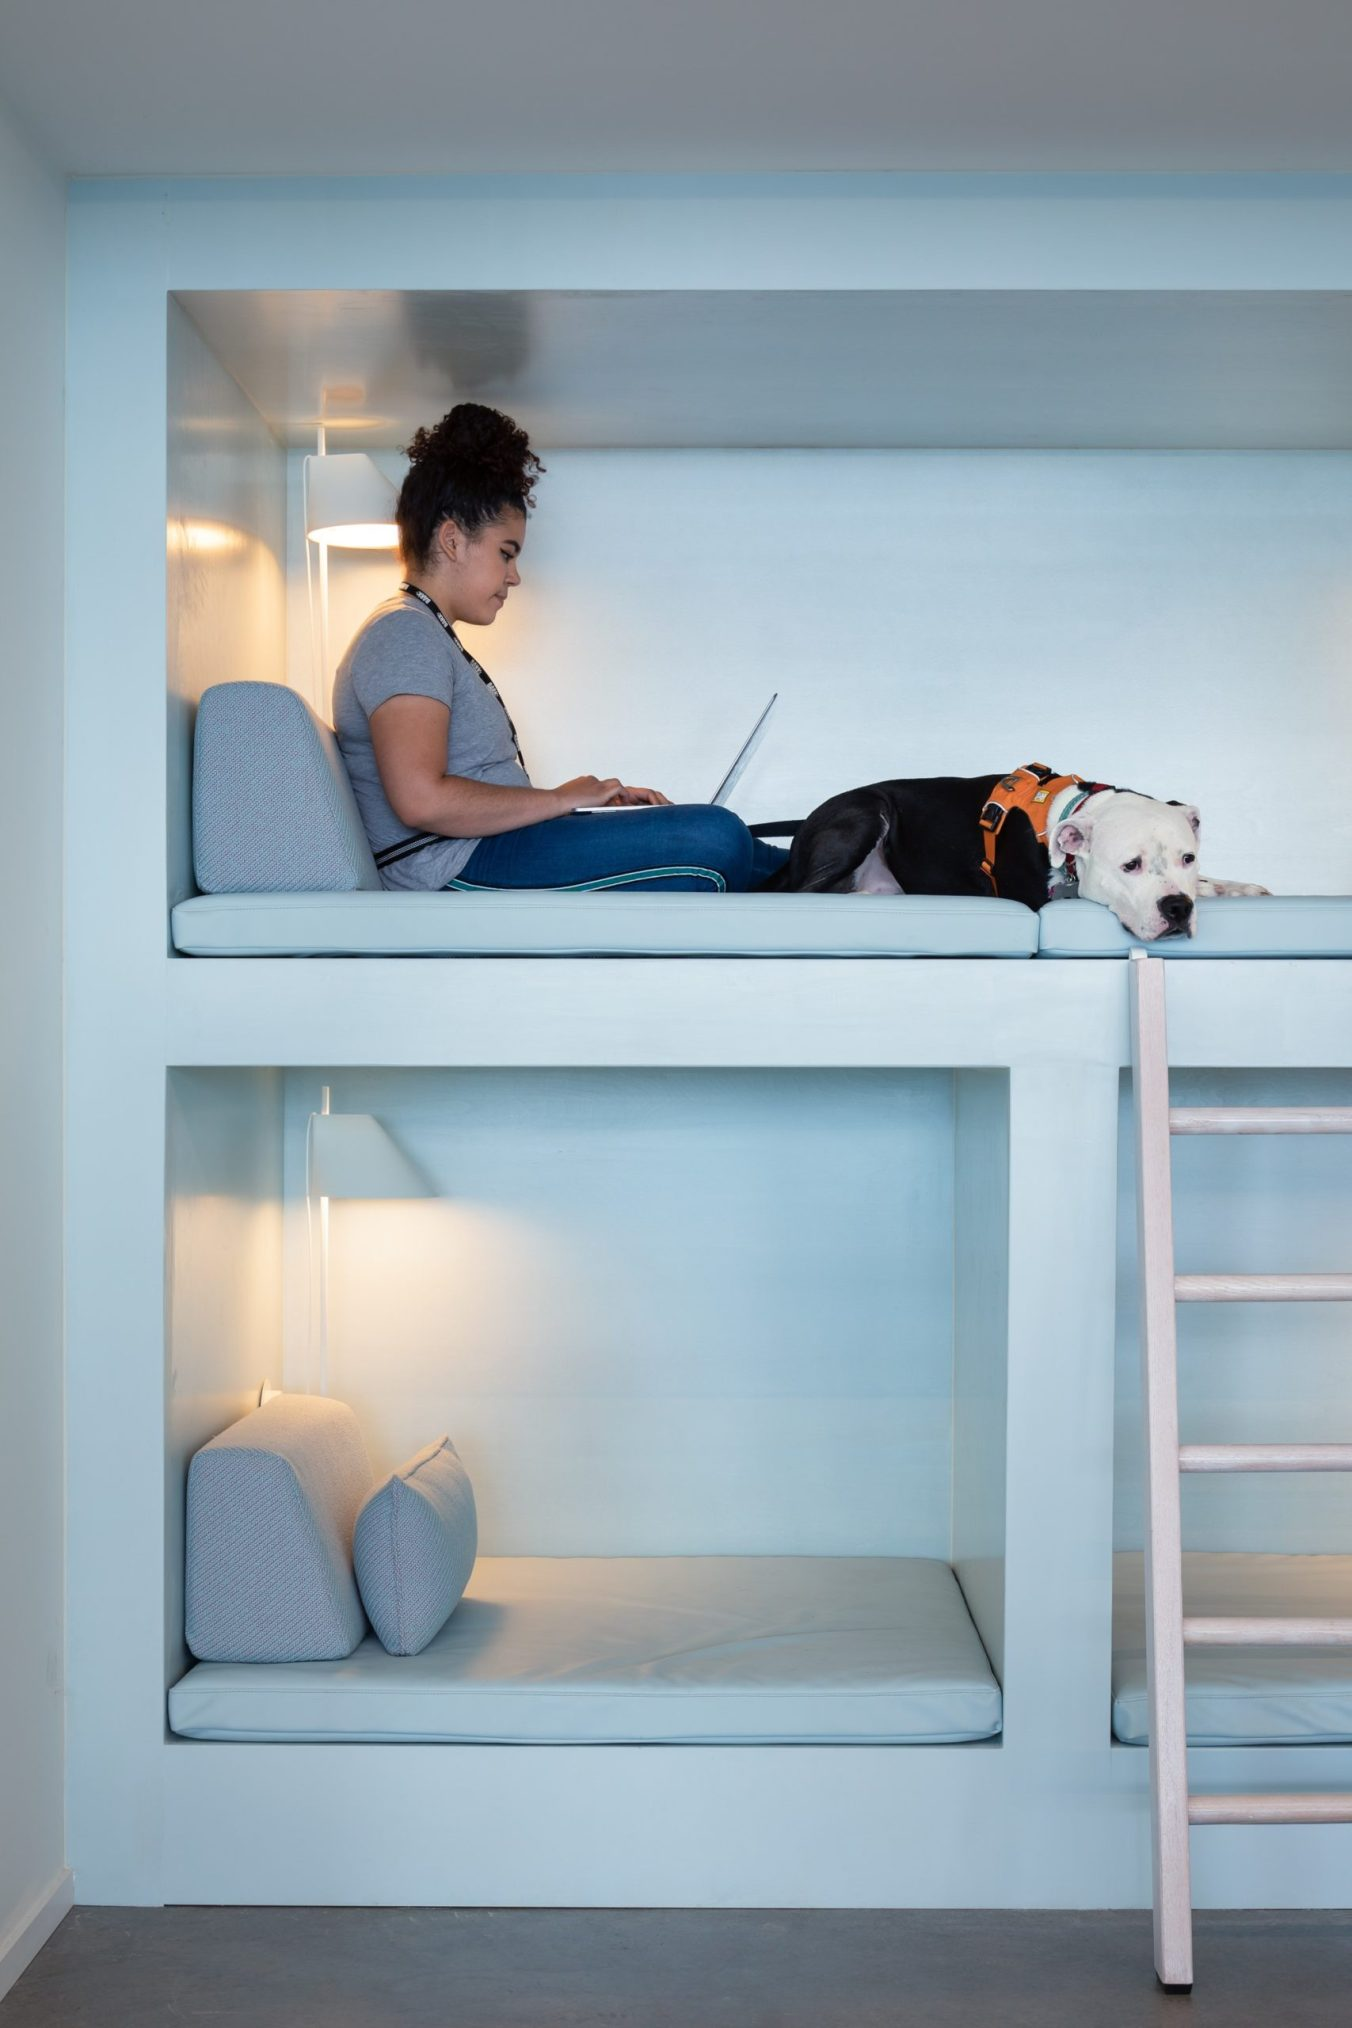 Woman working on laptop in cubbie with dog